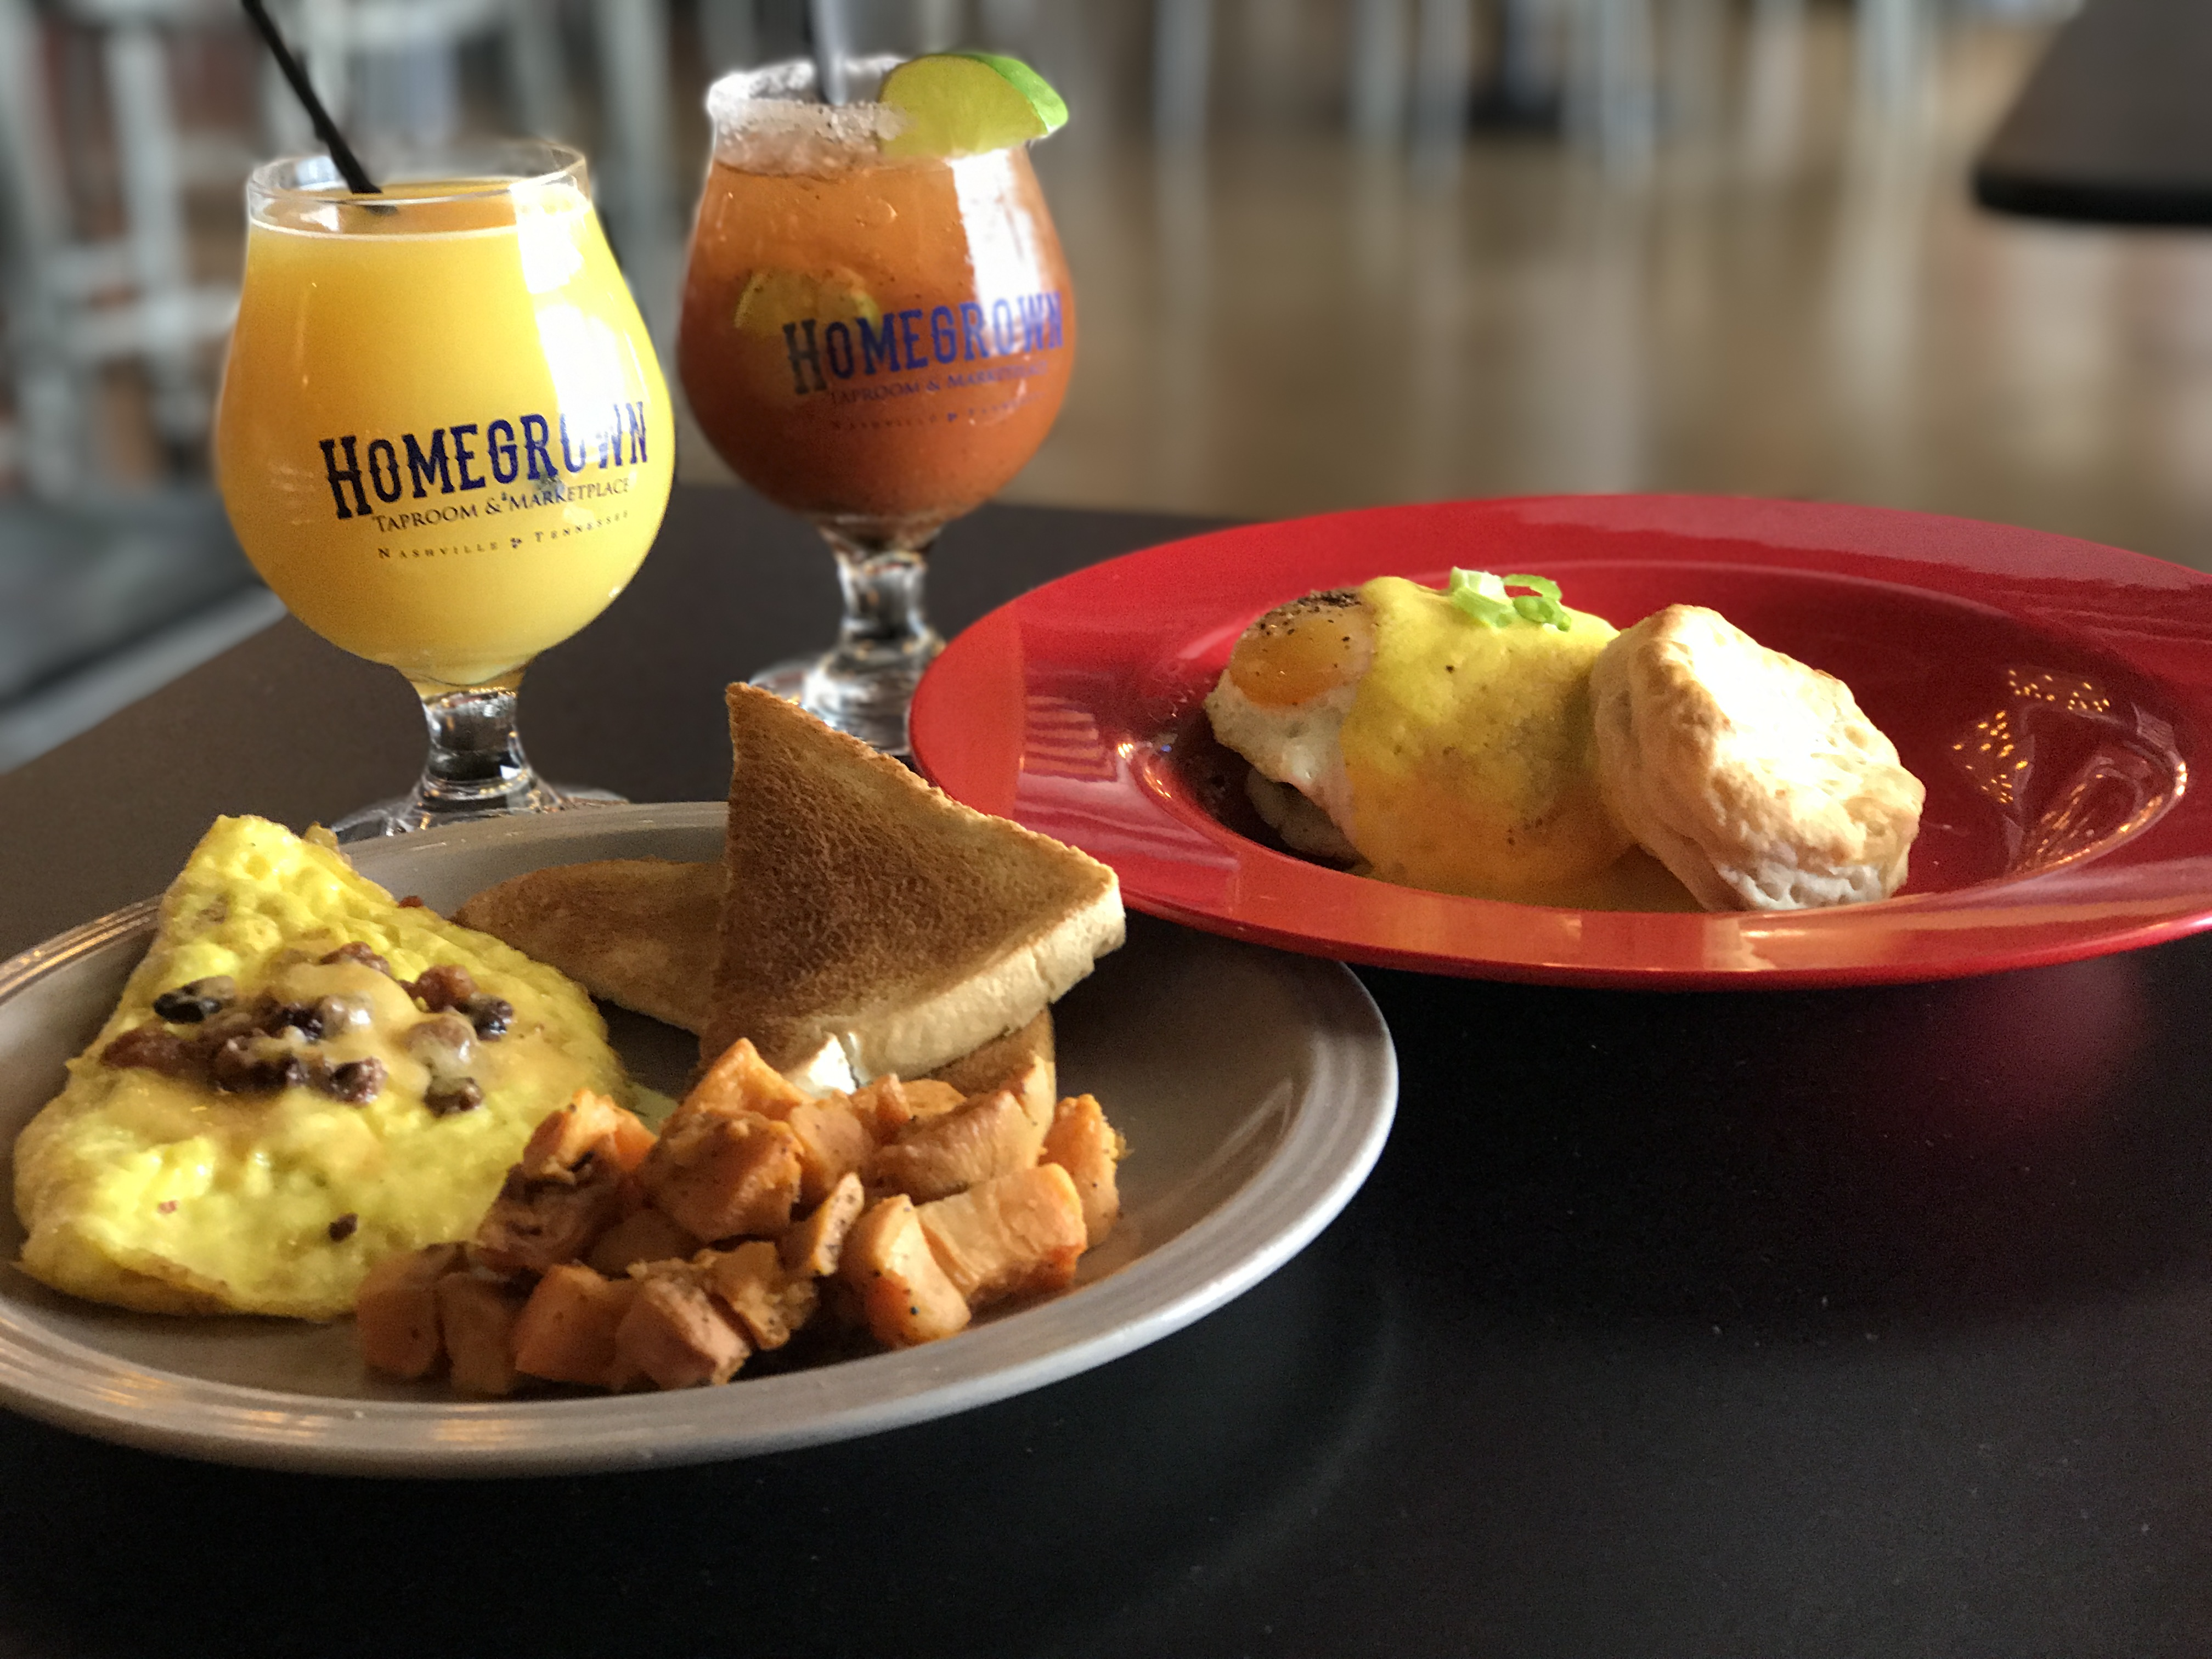 Sips and bites at Homegrown Taproom & Marketplace, Nashville